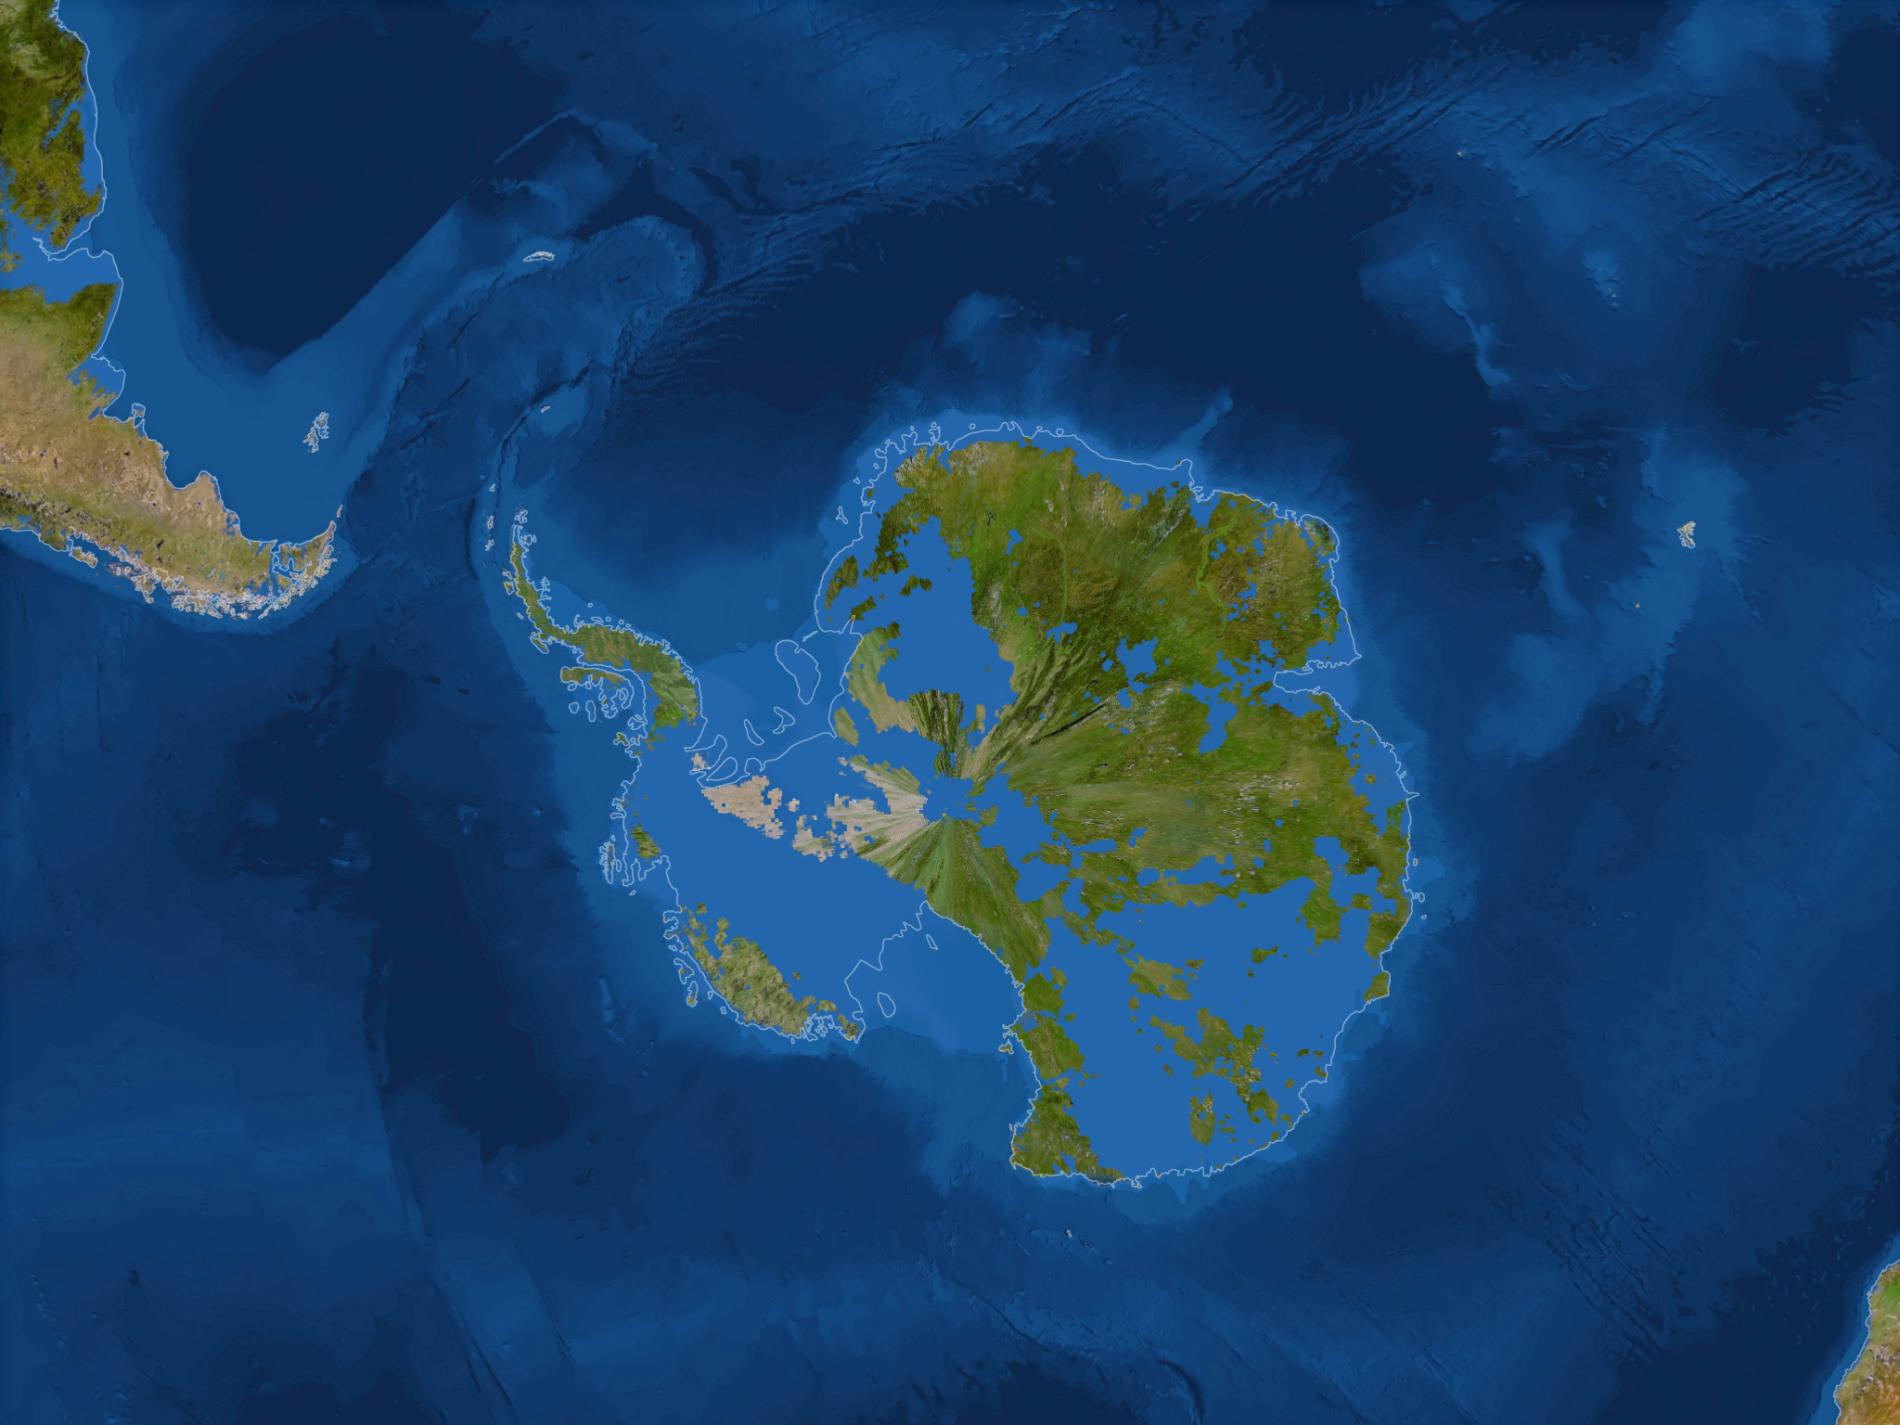 This Is How The World Will Look Like Once All The Ice Is Melted!